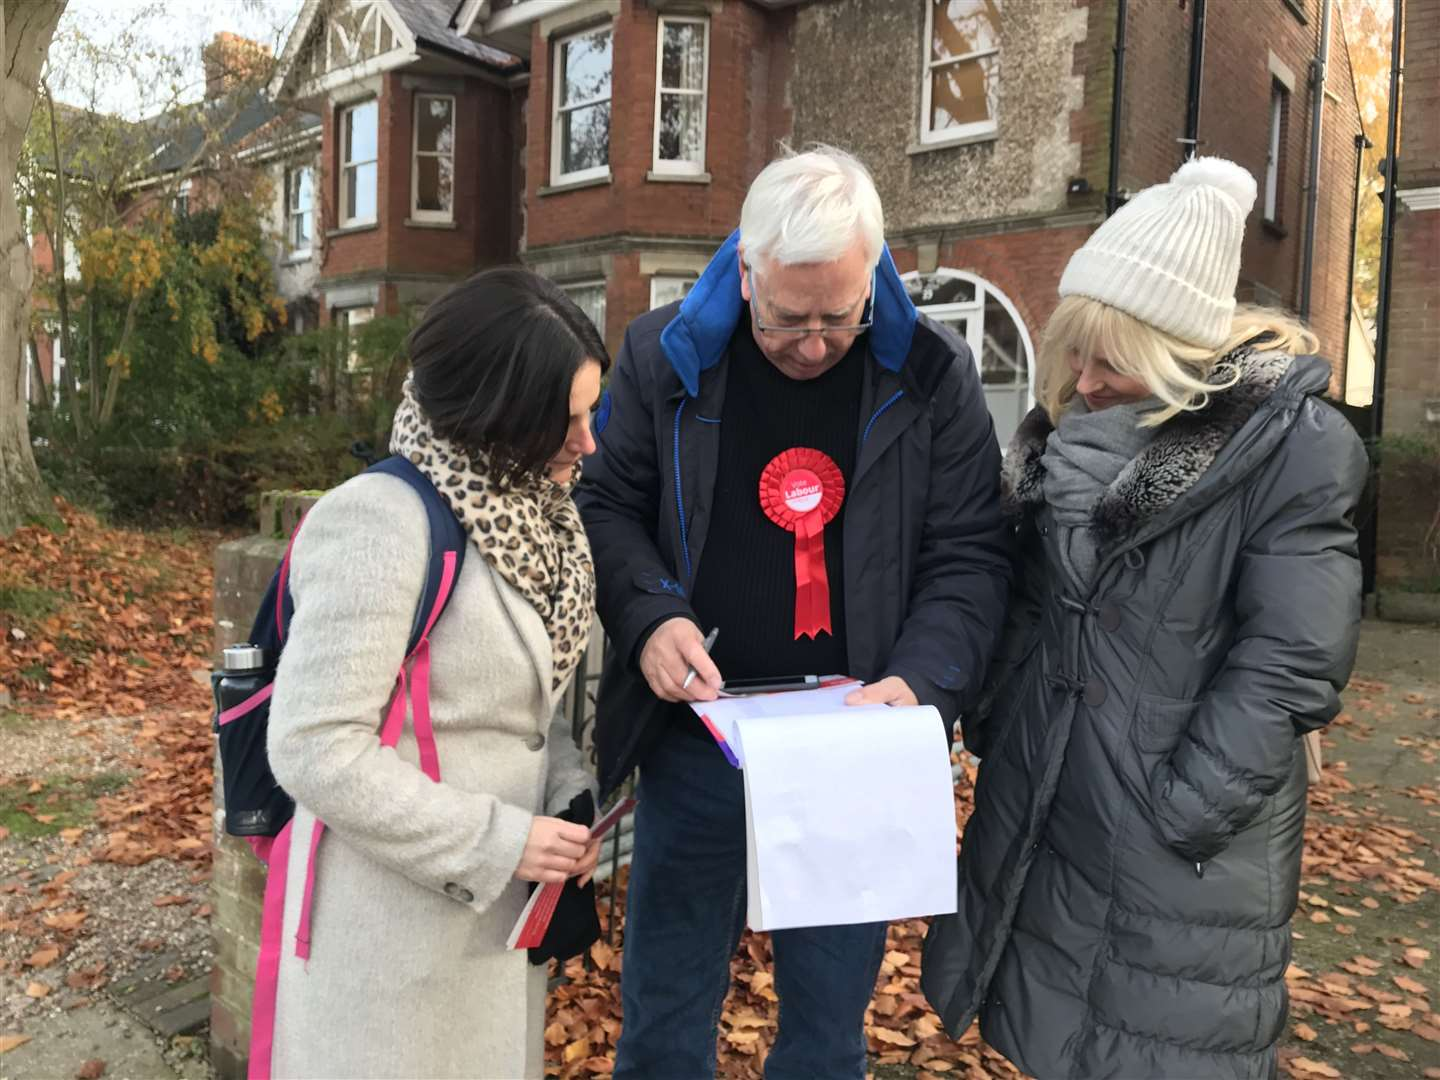 Suzanne Bold, Dave Wilson and Rosie Duffield deciding where to canvas next